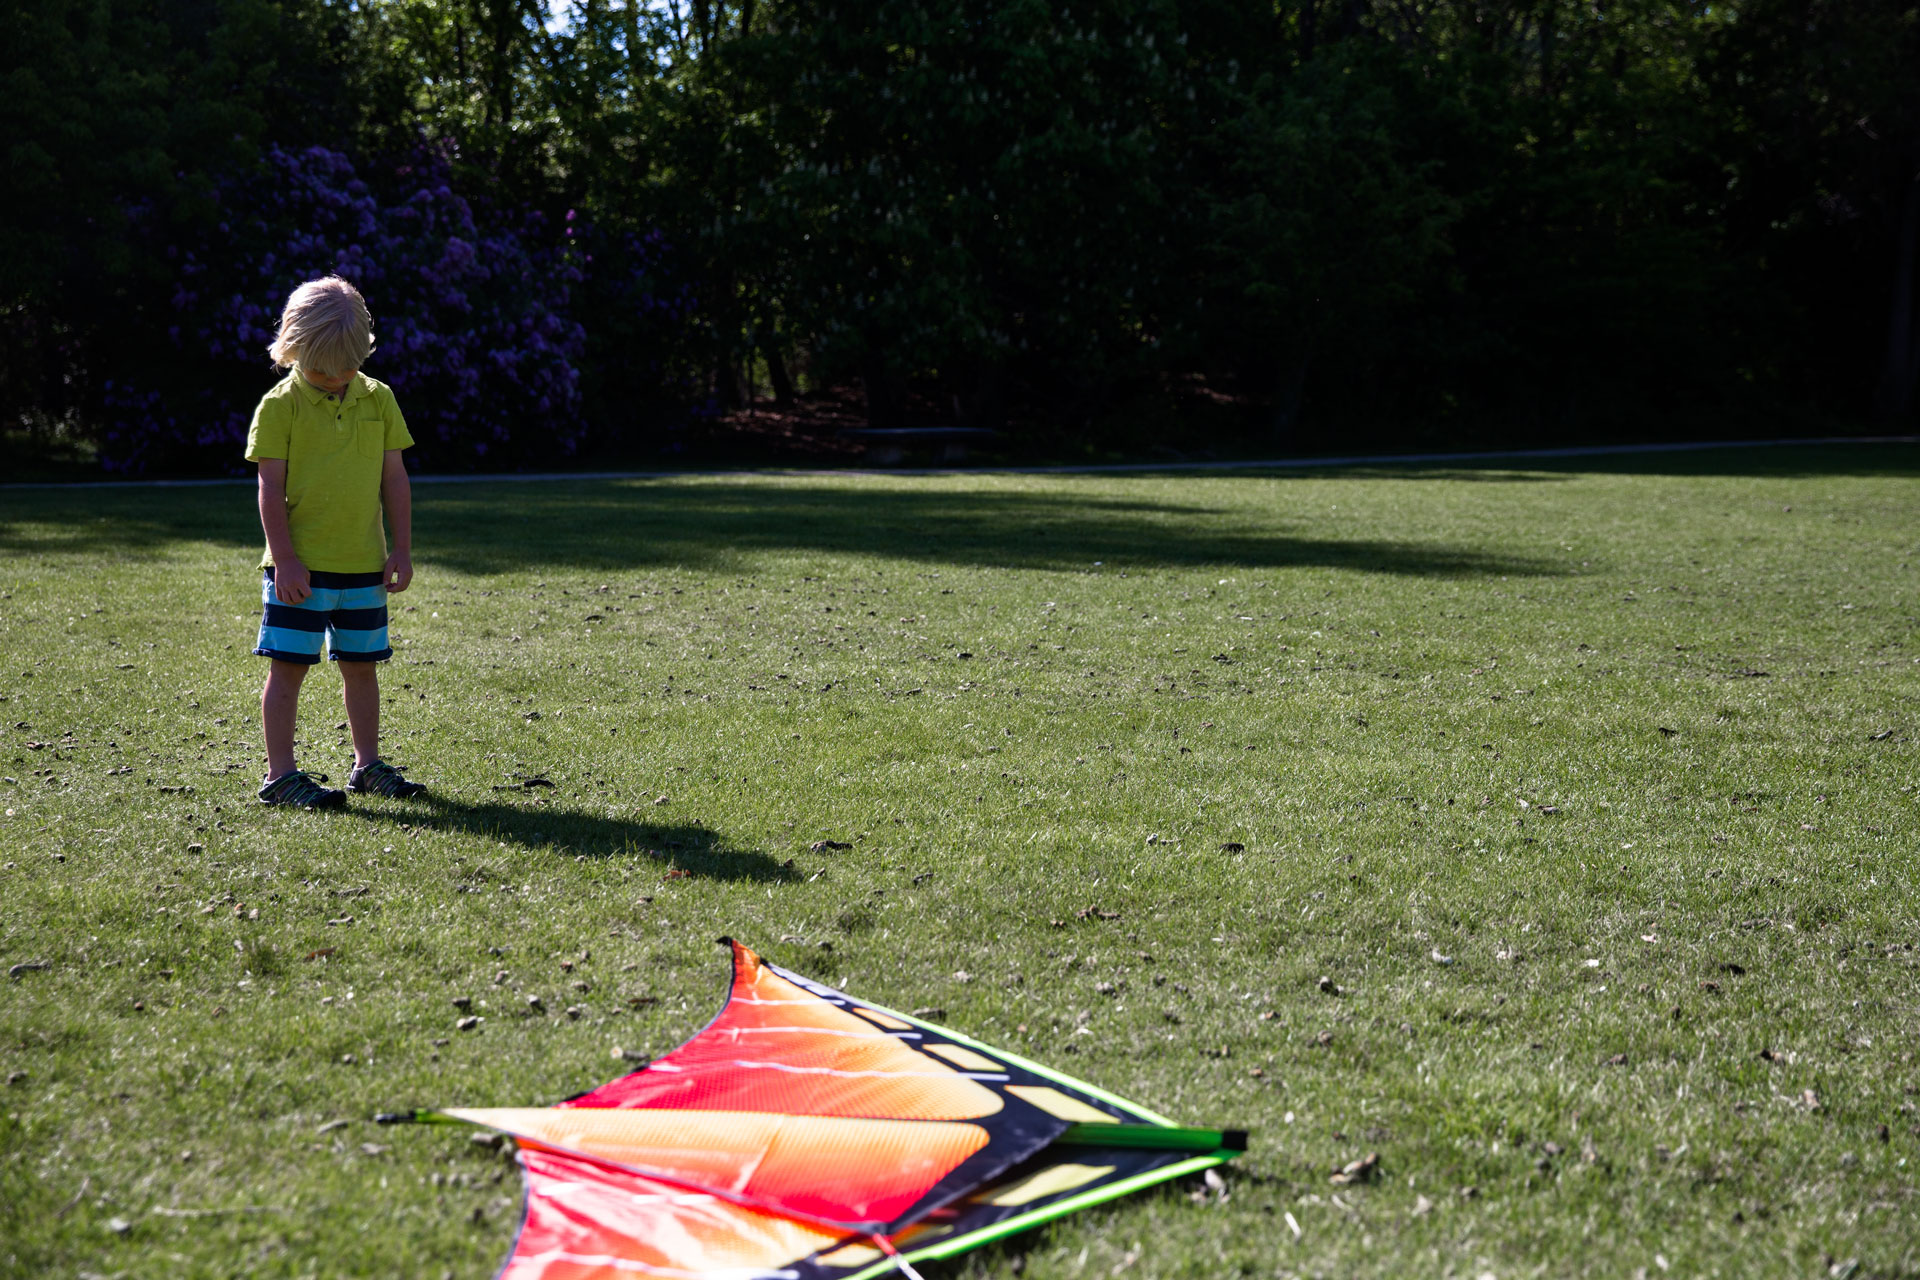 Little boy looking sad as kite is laying on the ground in front of him